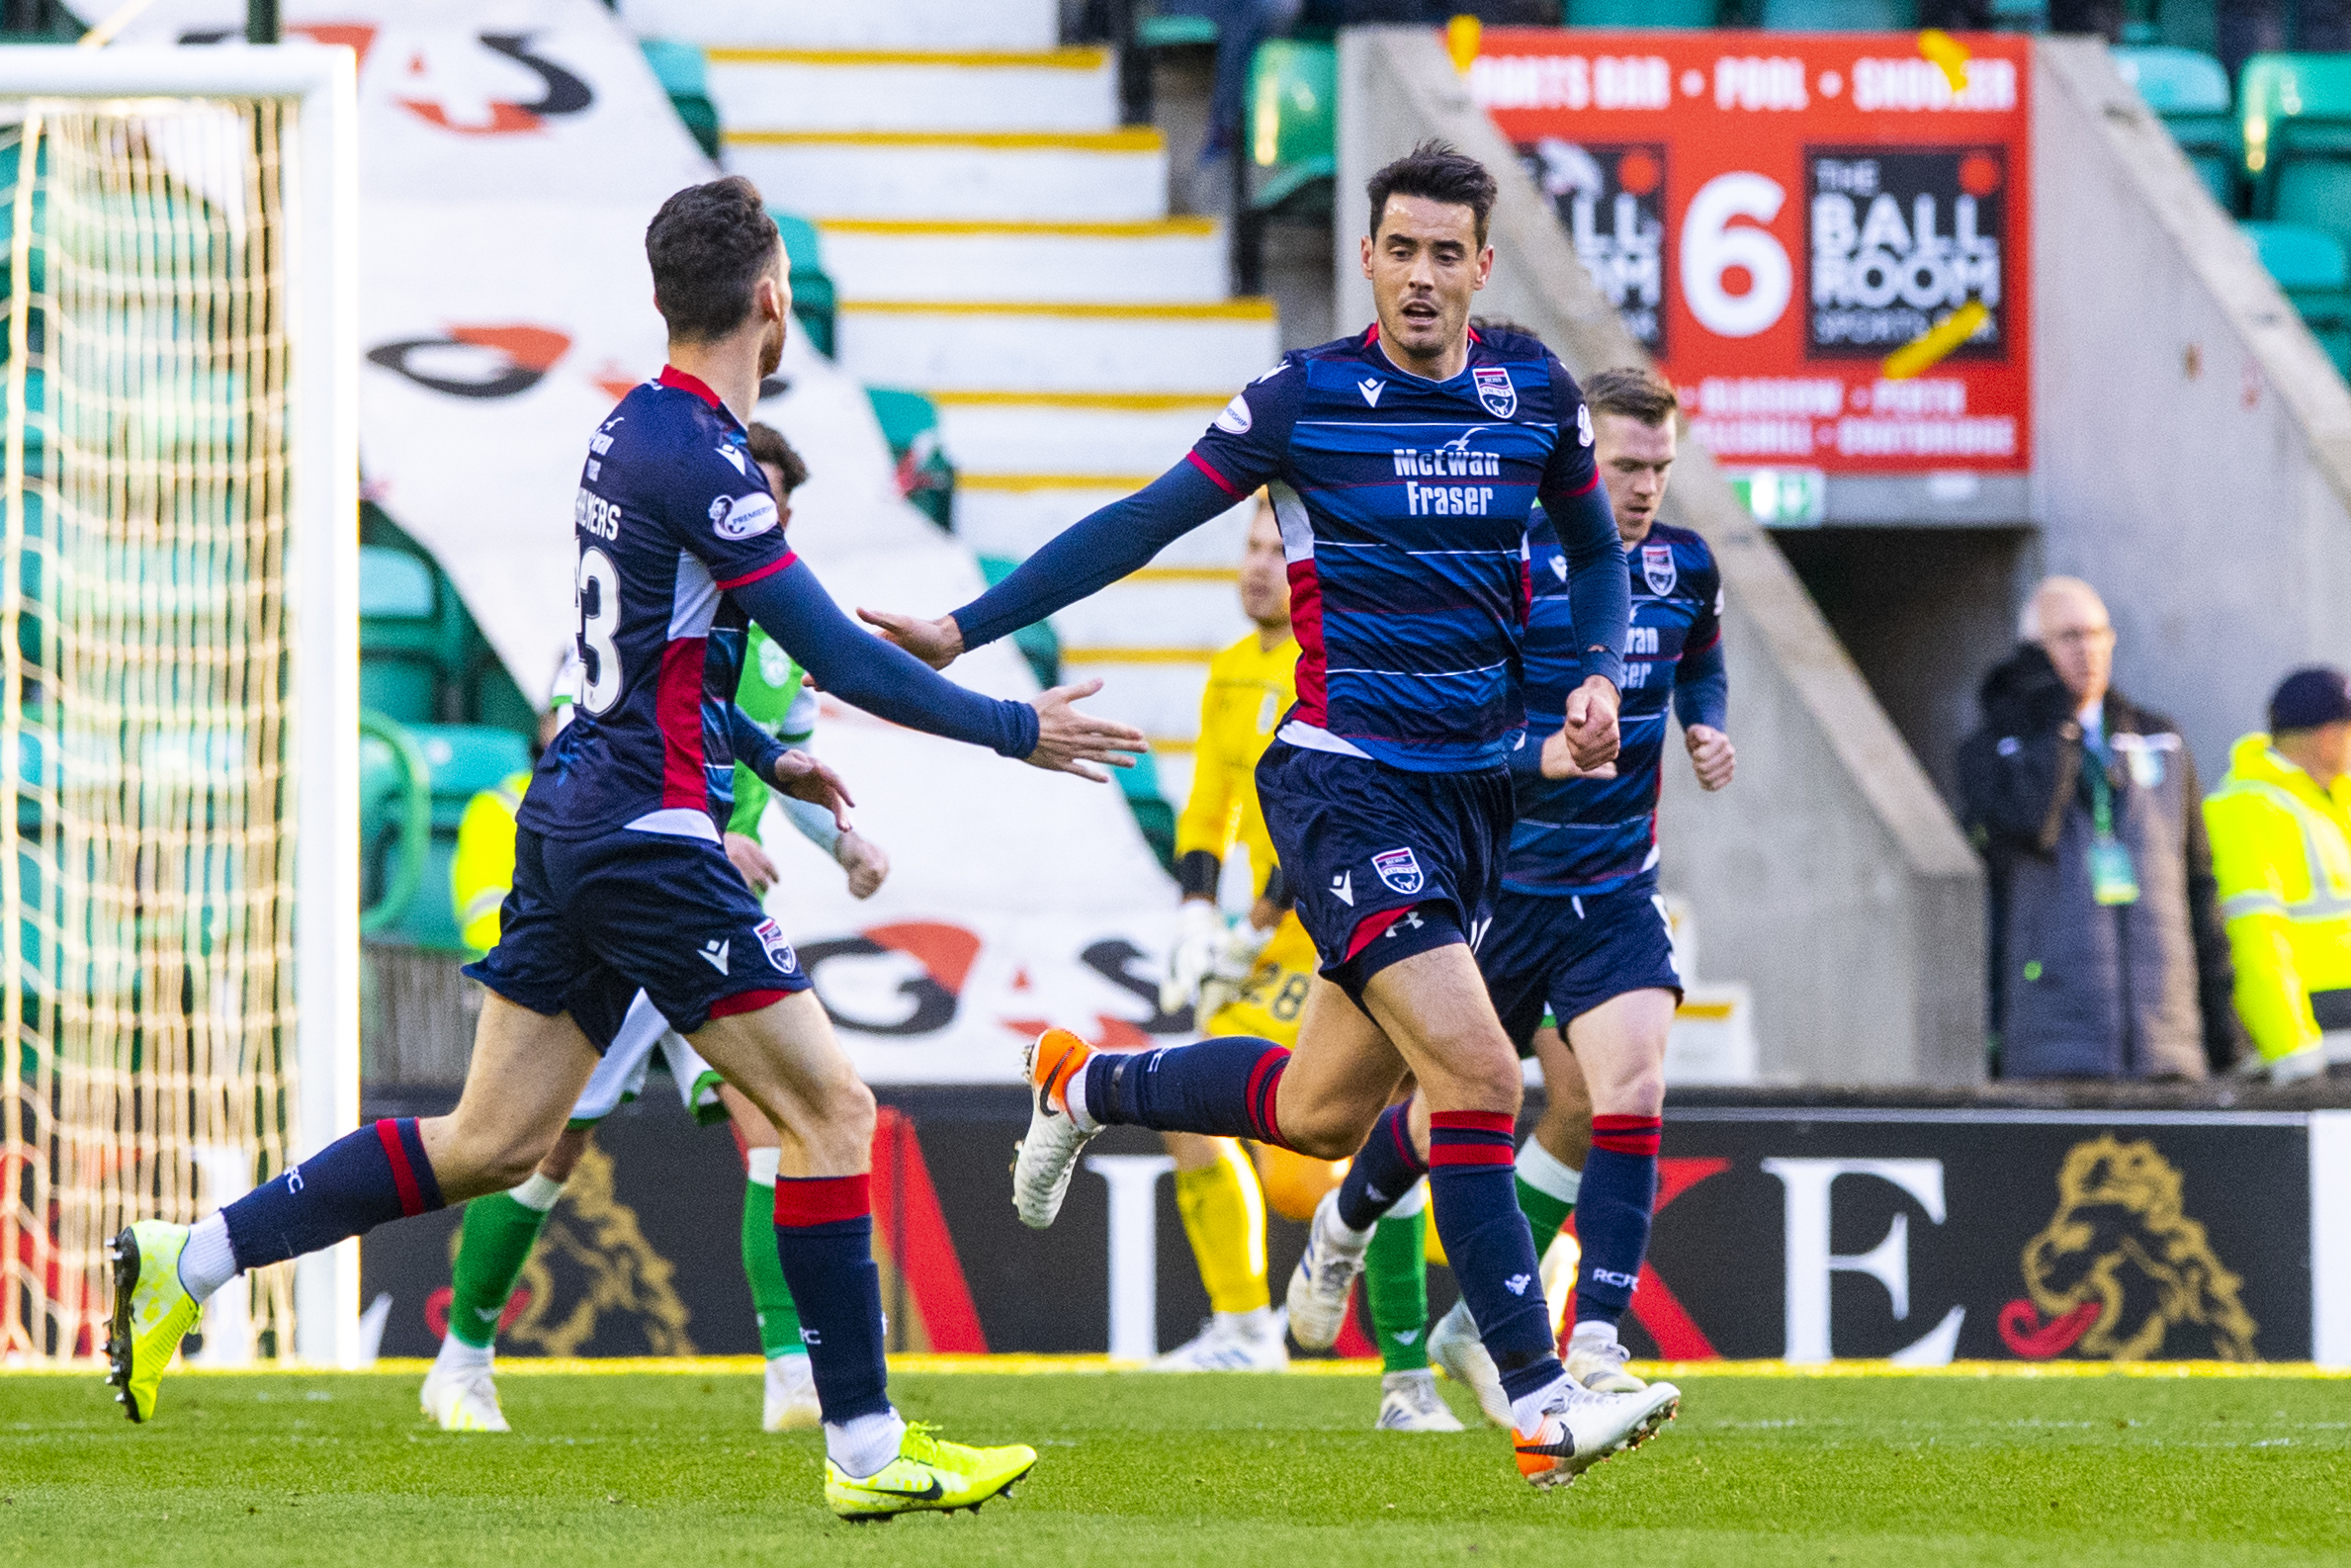 Partick Thistle's Brian Graham on why he left Ross County